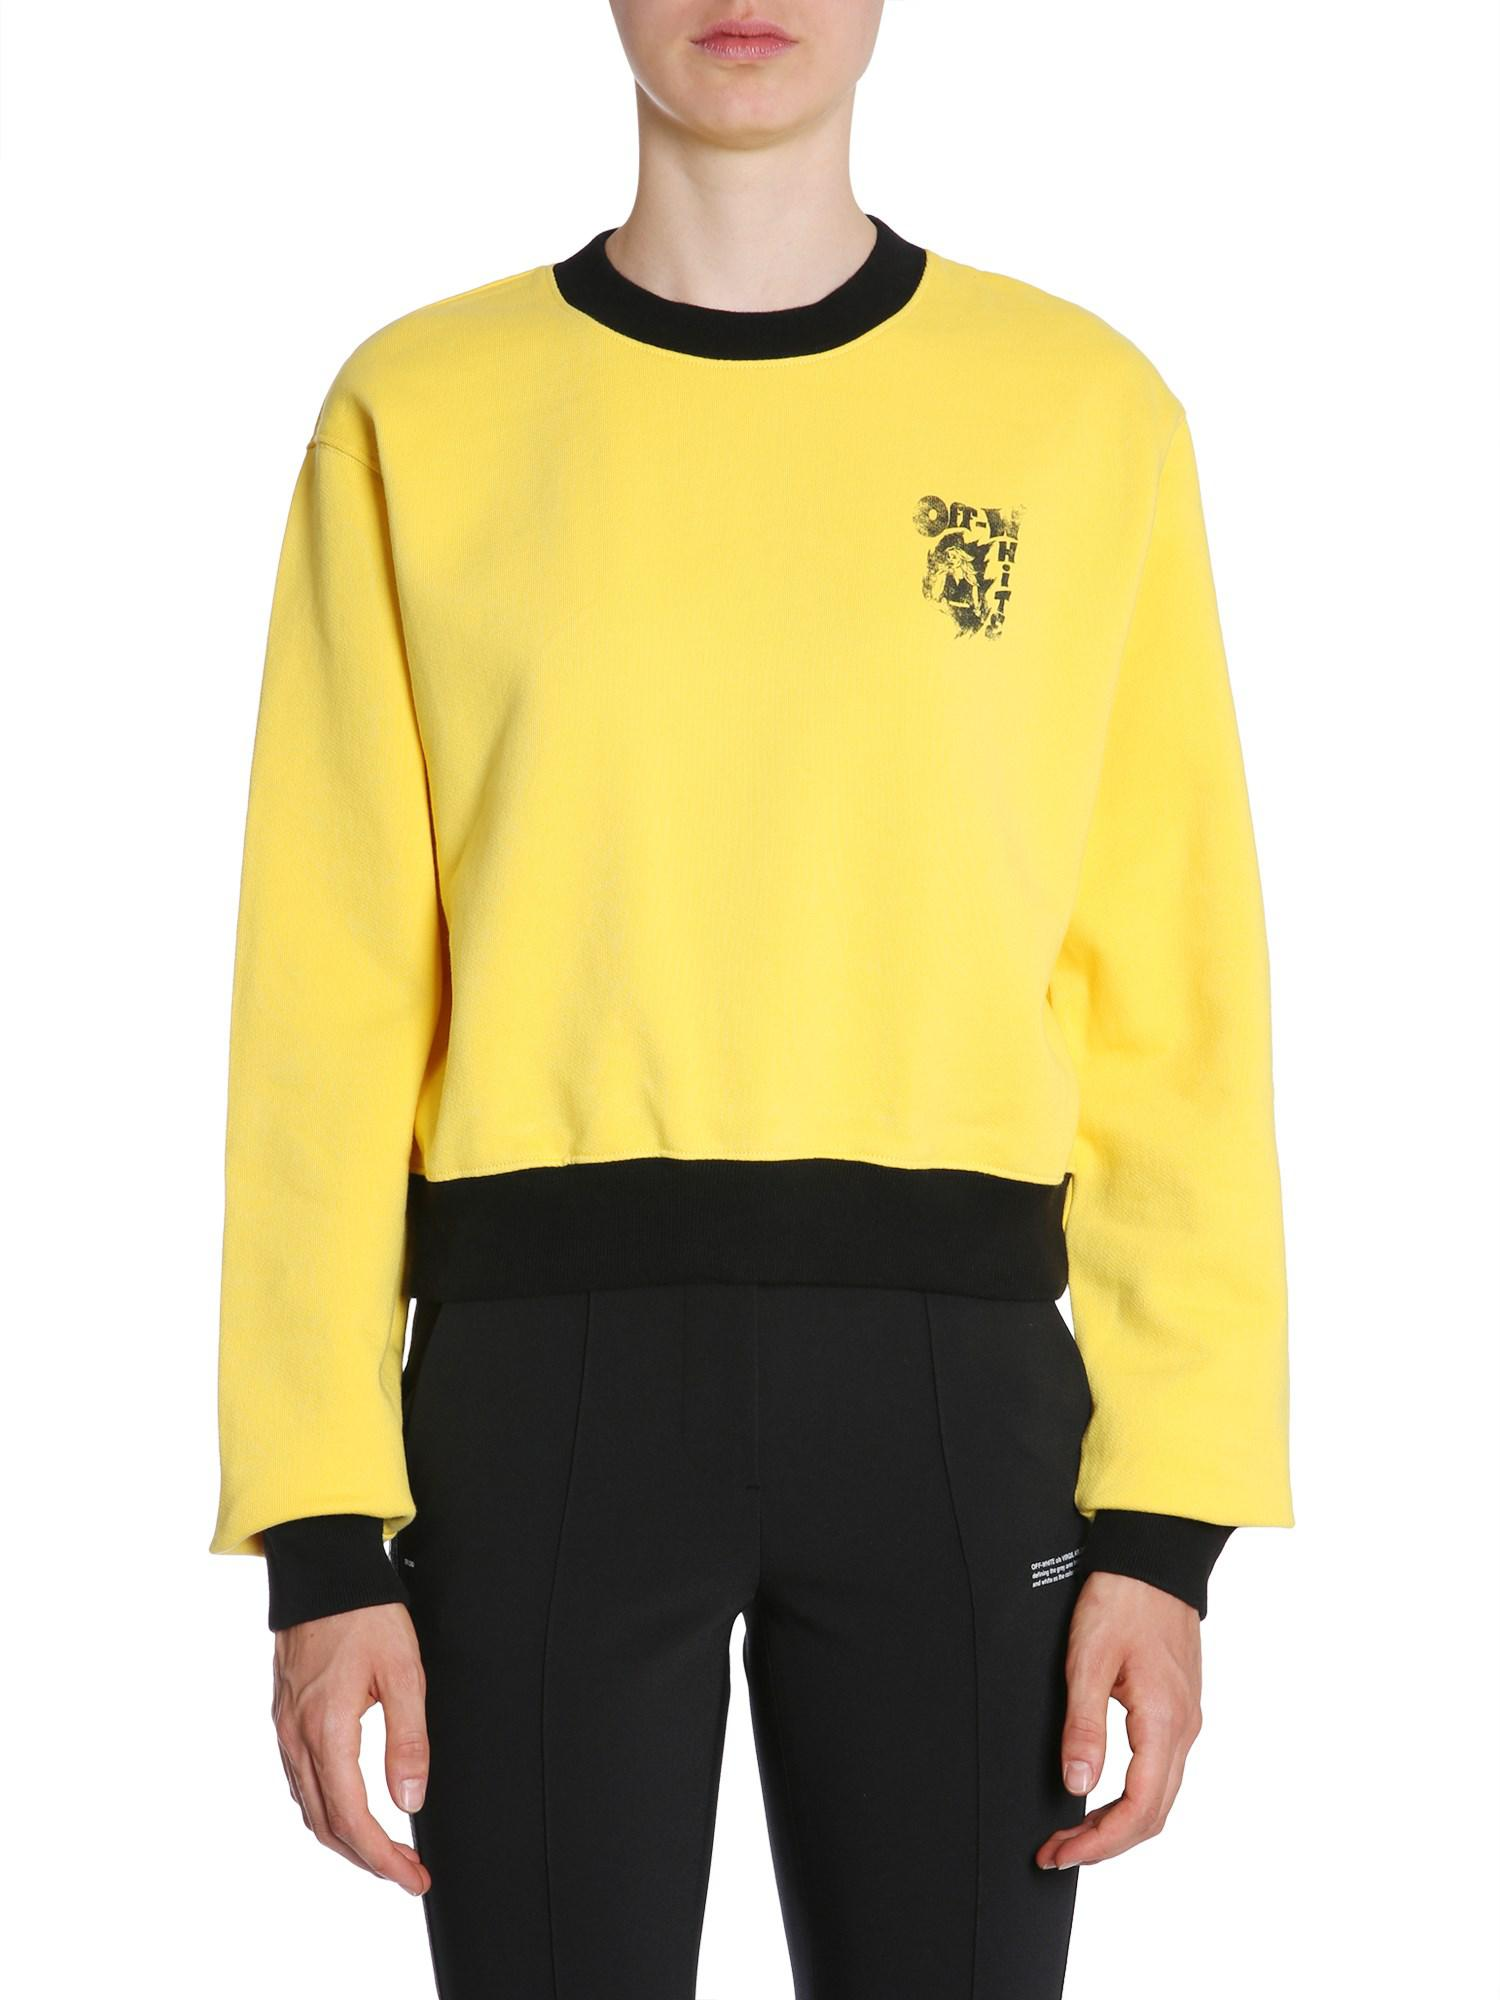 44407e6ac067 Off-White c o Virgil Abloh Cropped Cotton Sweatshirt With Singer ...